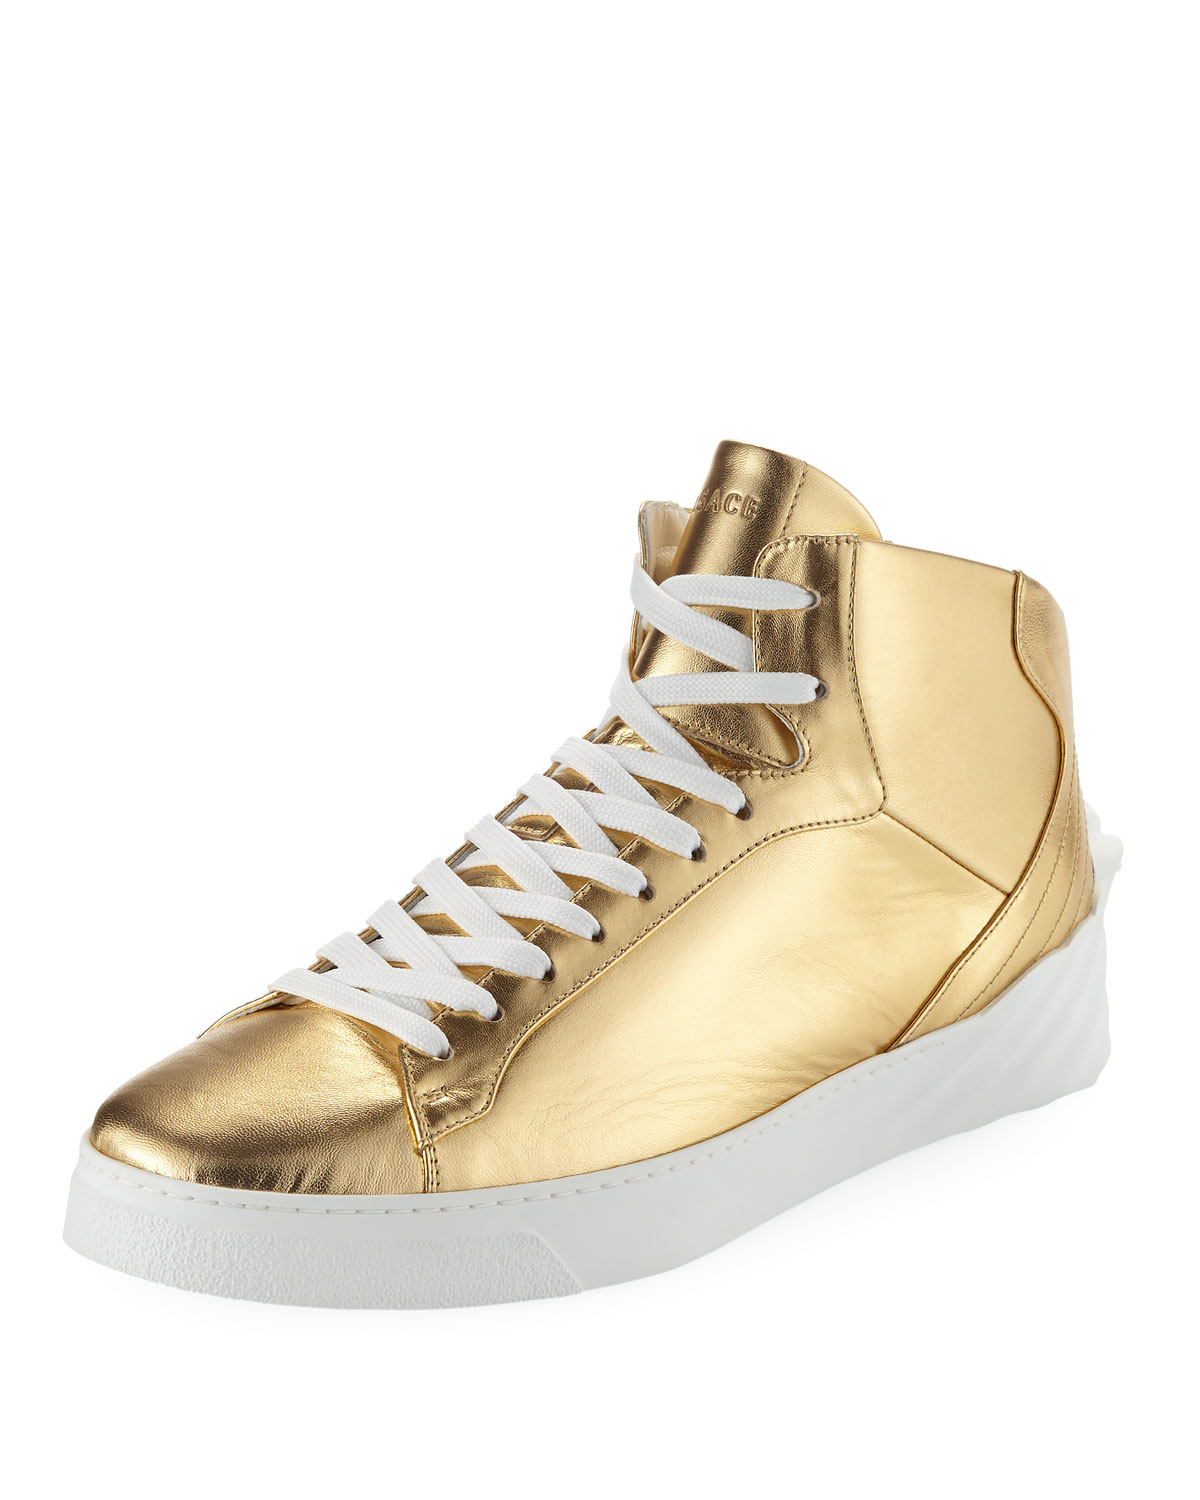 af4be904421 Versace Men s Metallic Leather High-Top Sneakers with Medusa ...